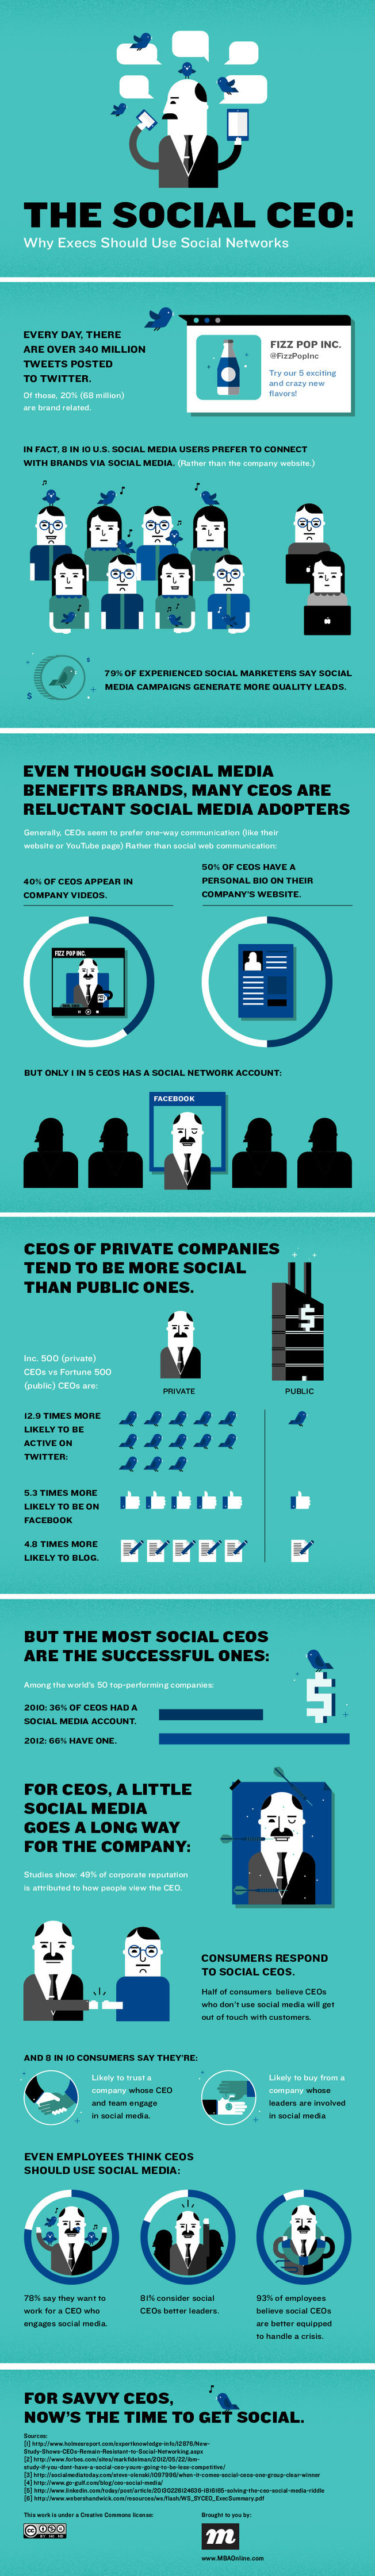 The Social CEO: Why Execs Should Use Social Networks [Infographics]